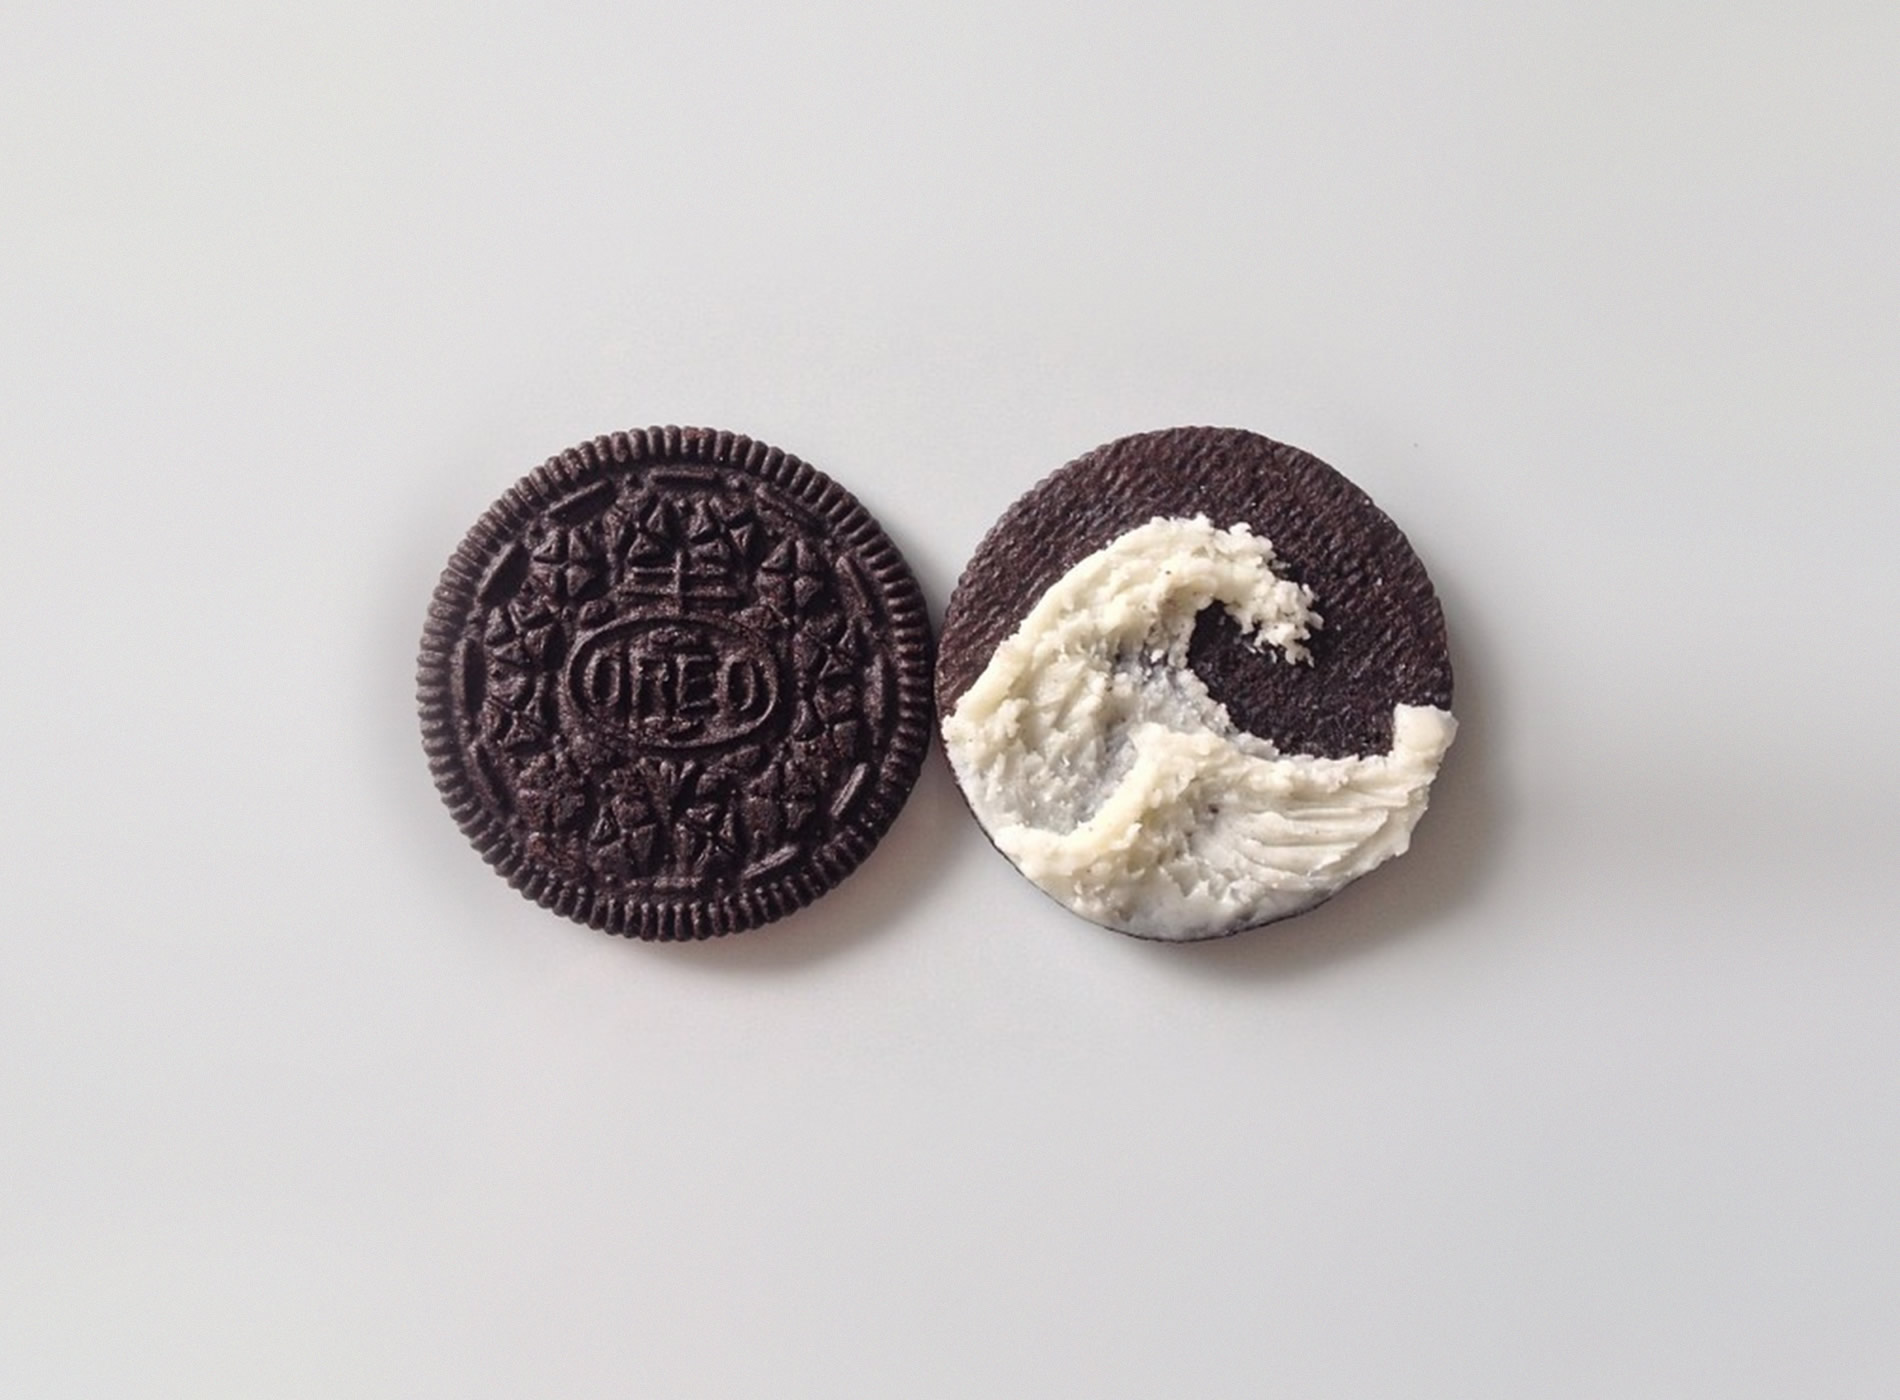 Tisha Cherry's Oreo Cream Art